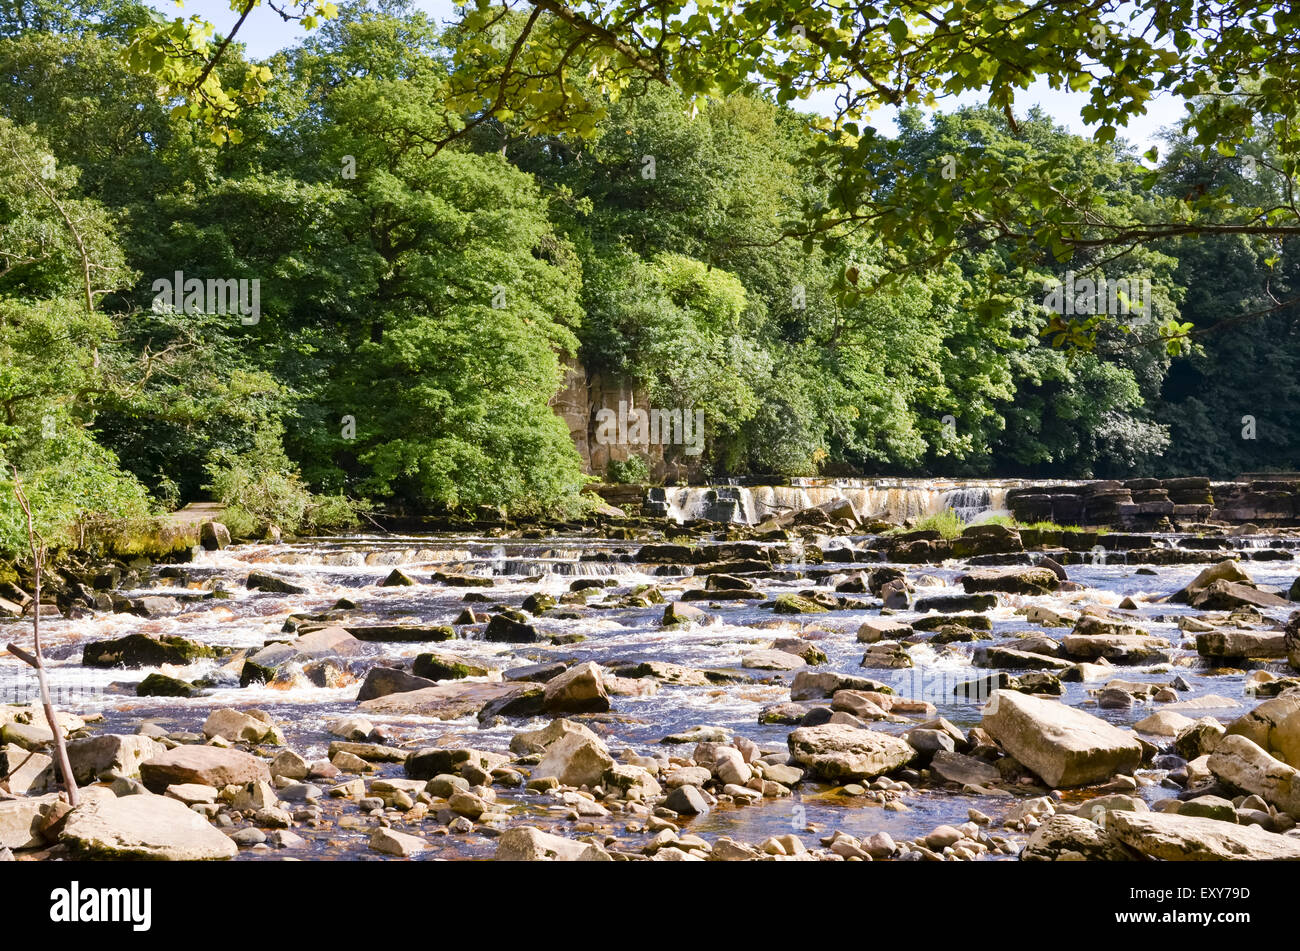 River Swale Waterfall at Richmond, North Yorkshire - Stock Image